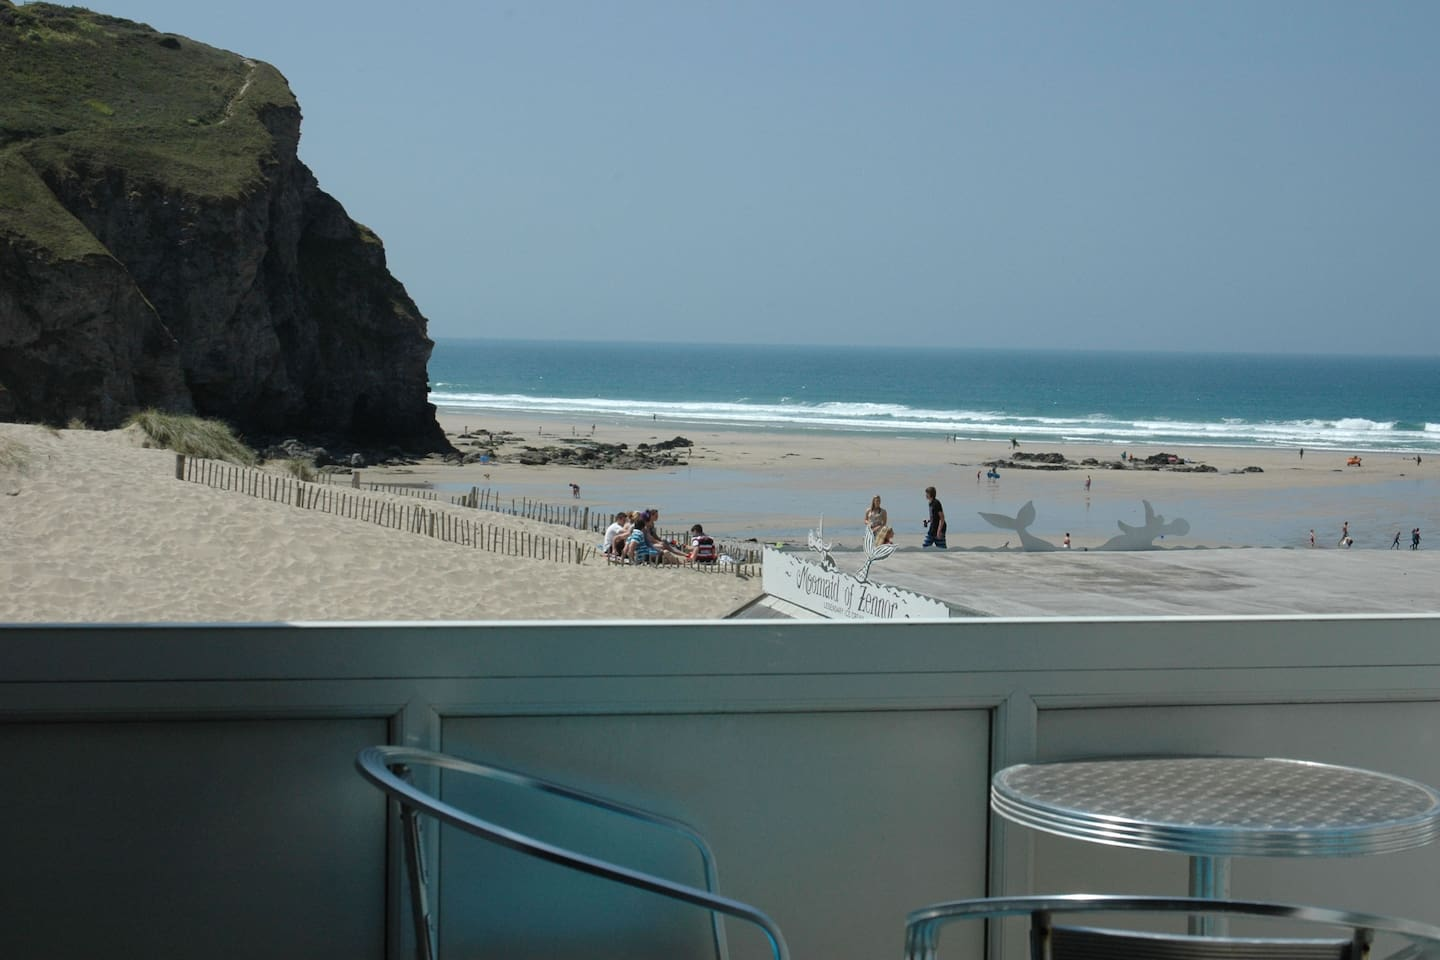 This is the sea view, directly from the balcony of our flat in Porthtowan, Cornwall.